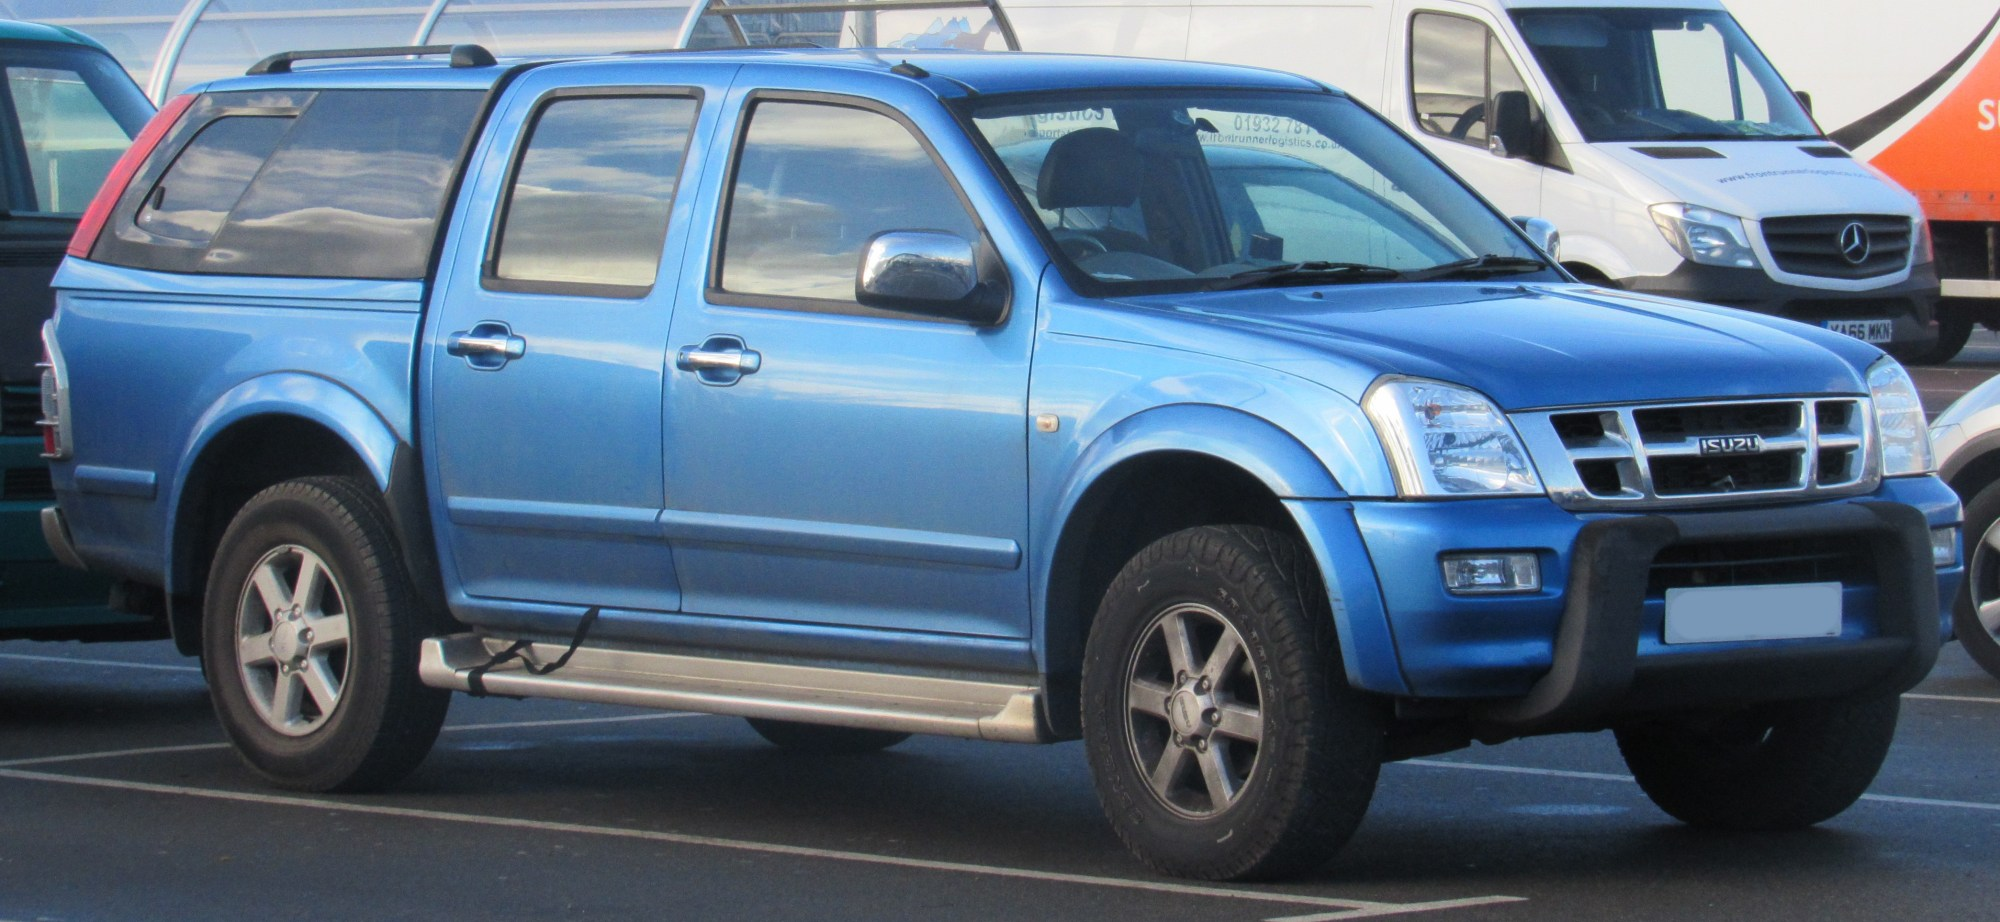 hight resolution of file 2005 isuzu rodeo denver td automatic 3 0 jpg